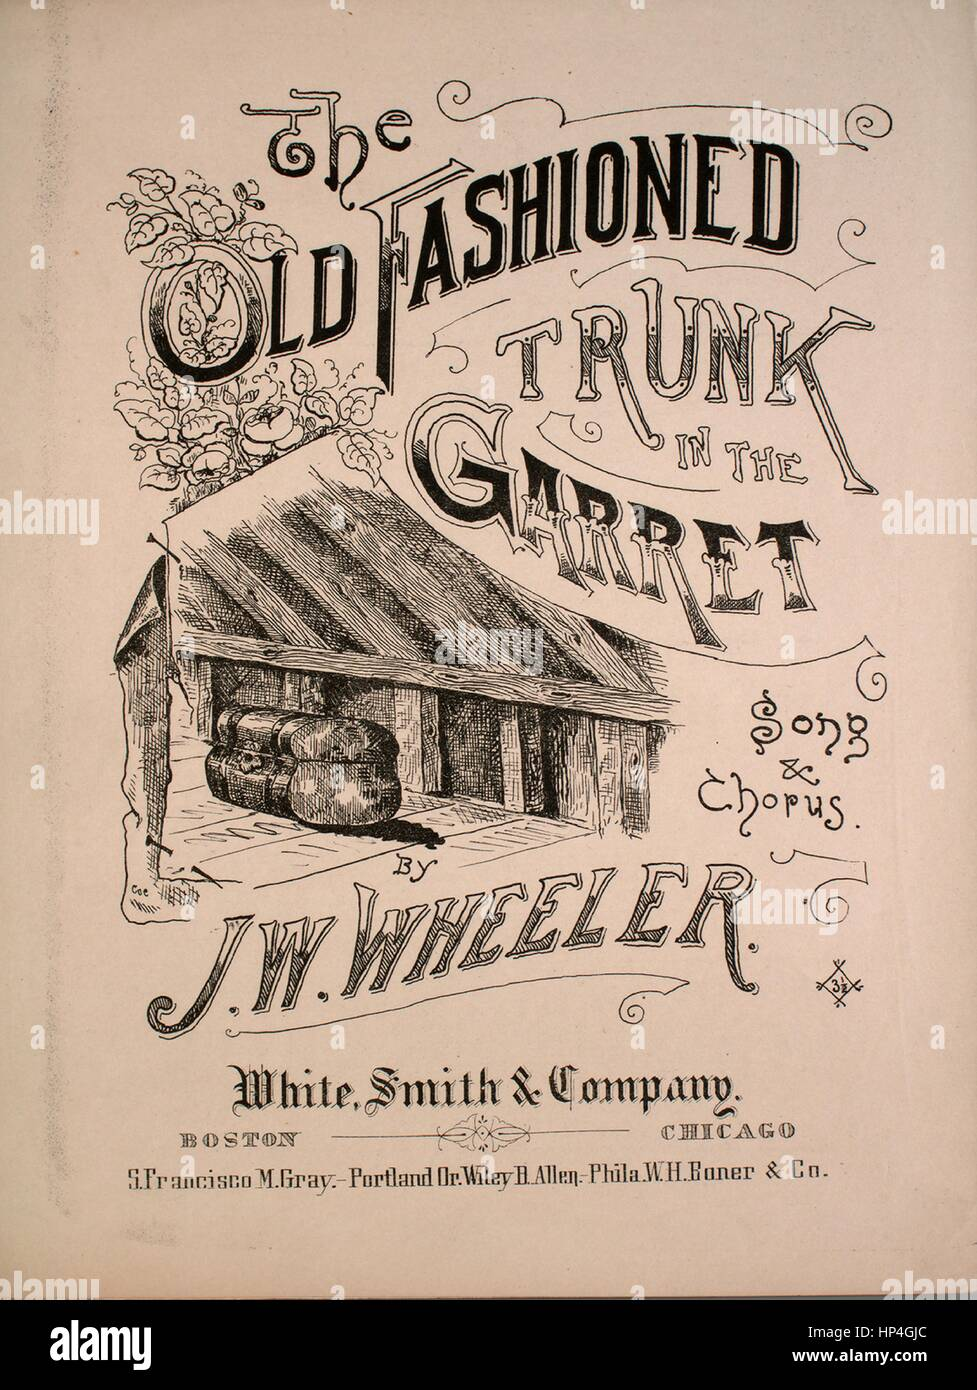 Sheet Music Cover Image Of The Song The Old Fashioned